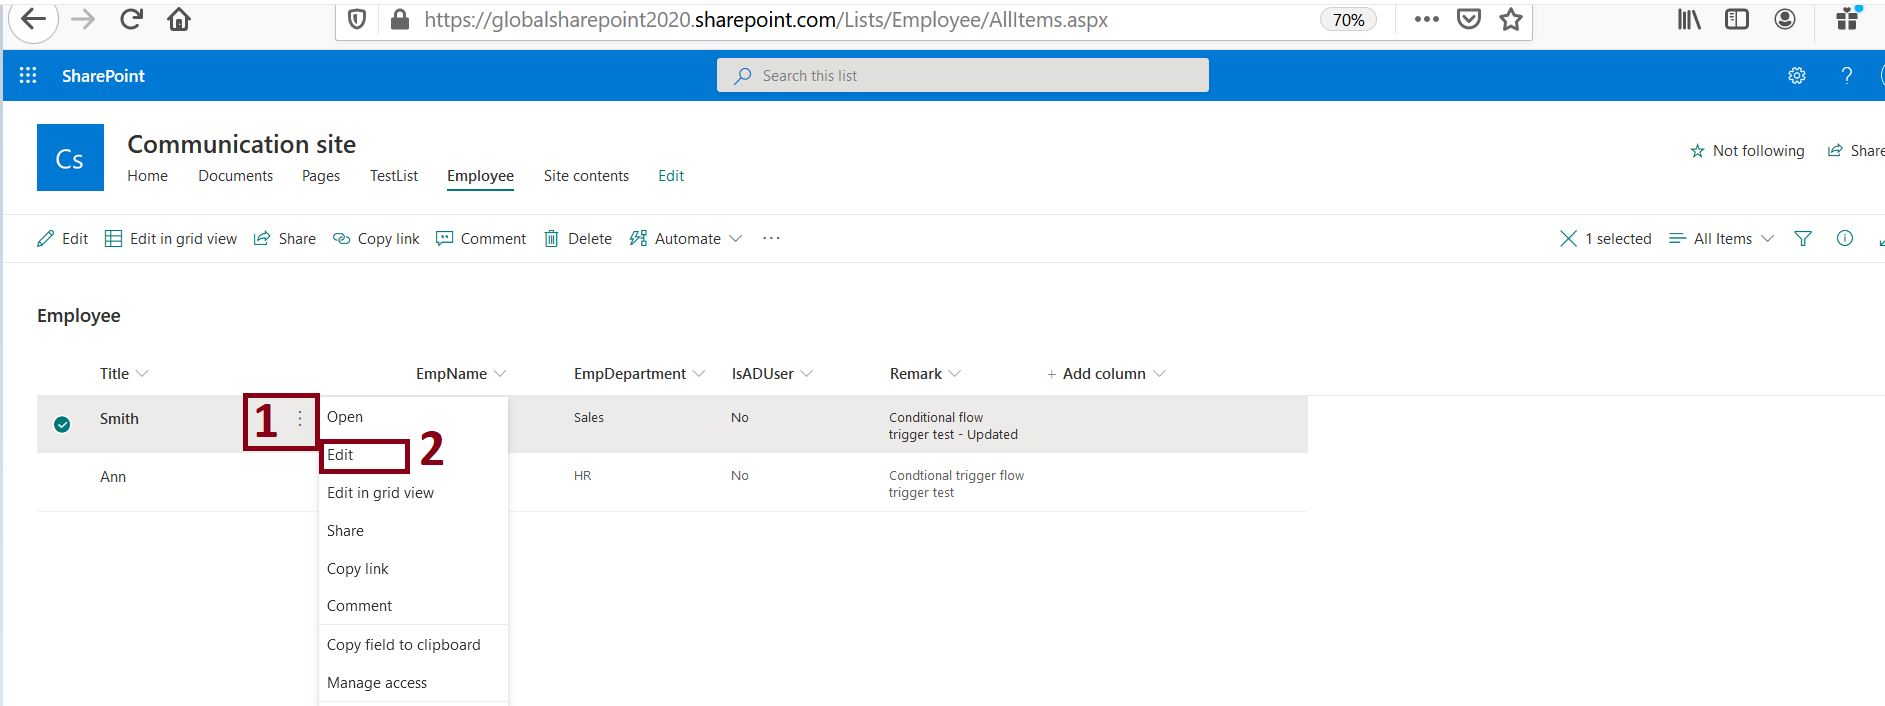 Track item history comment details in SharePoint Online list